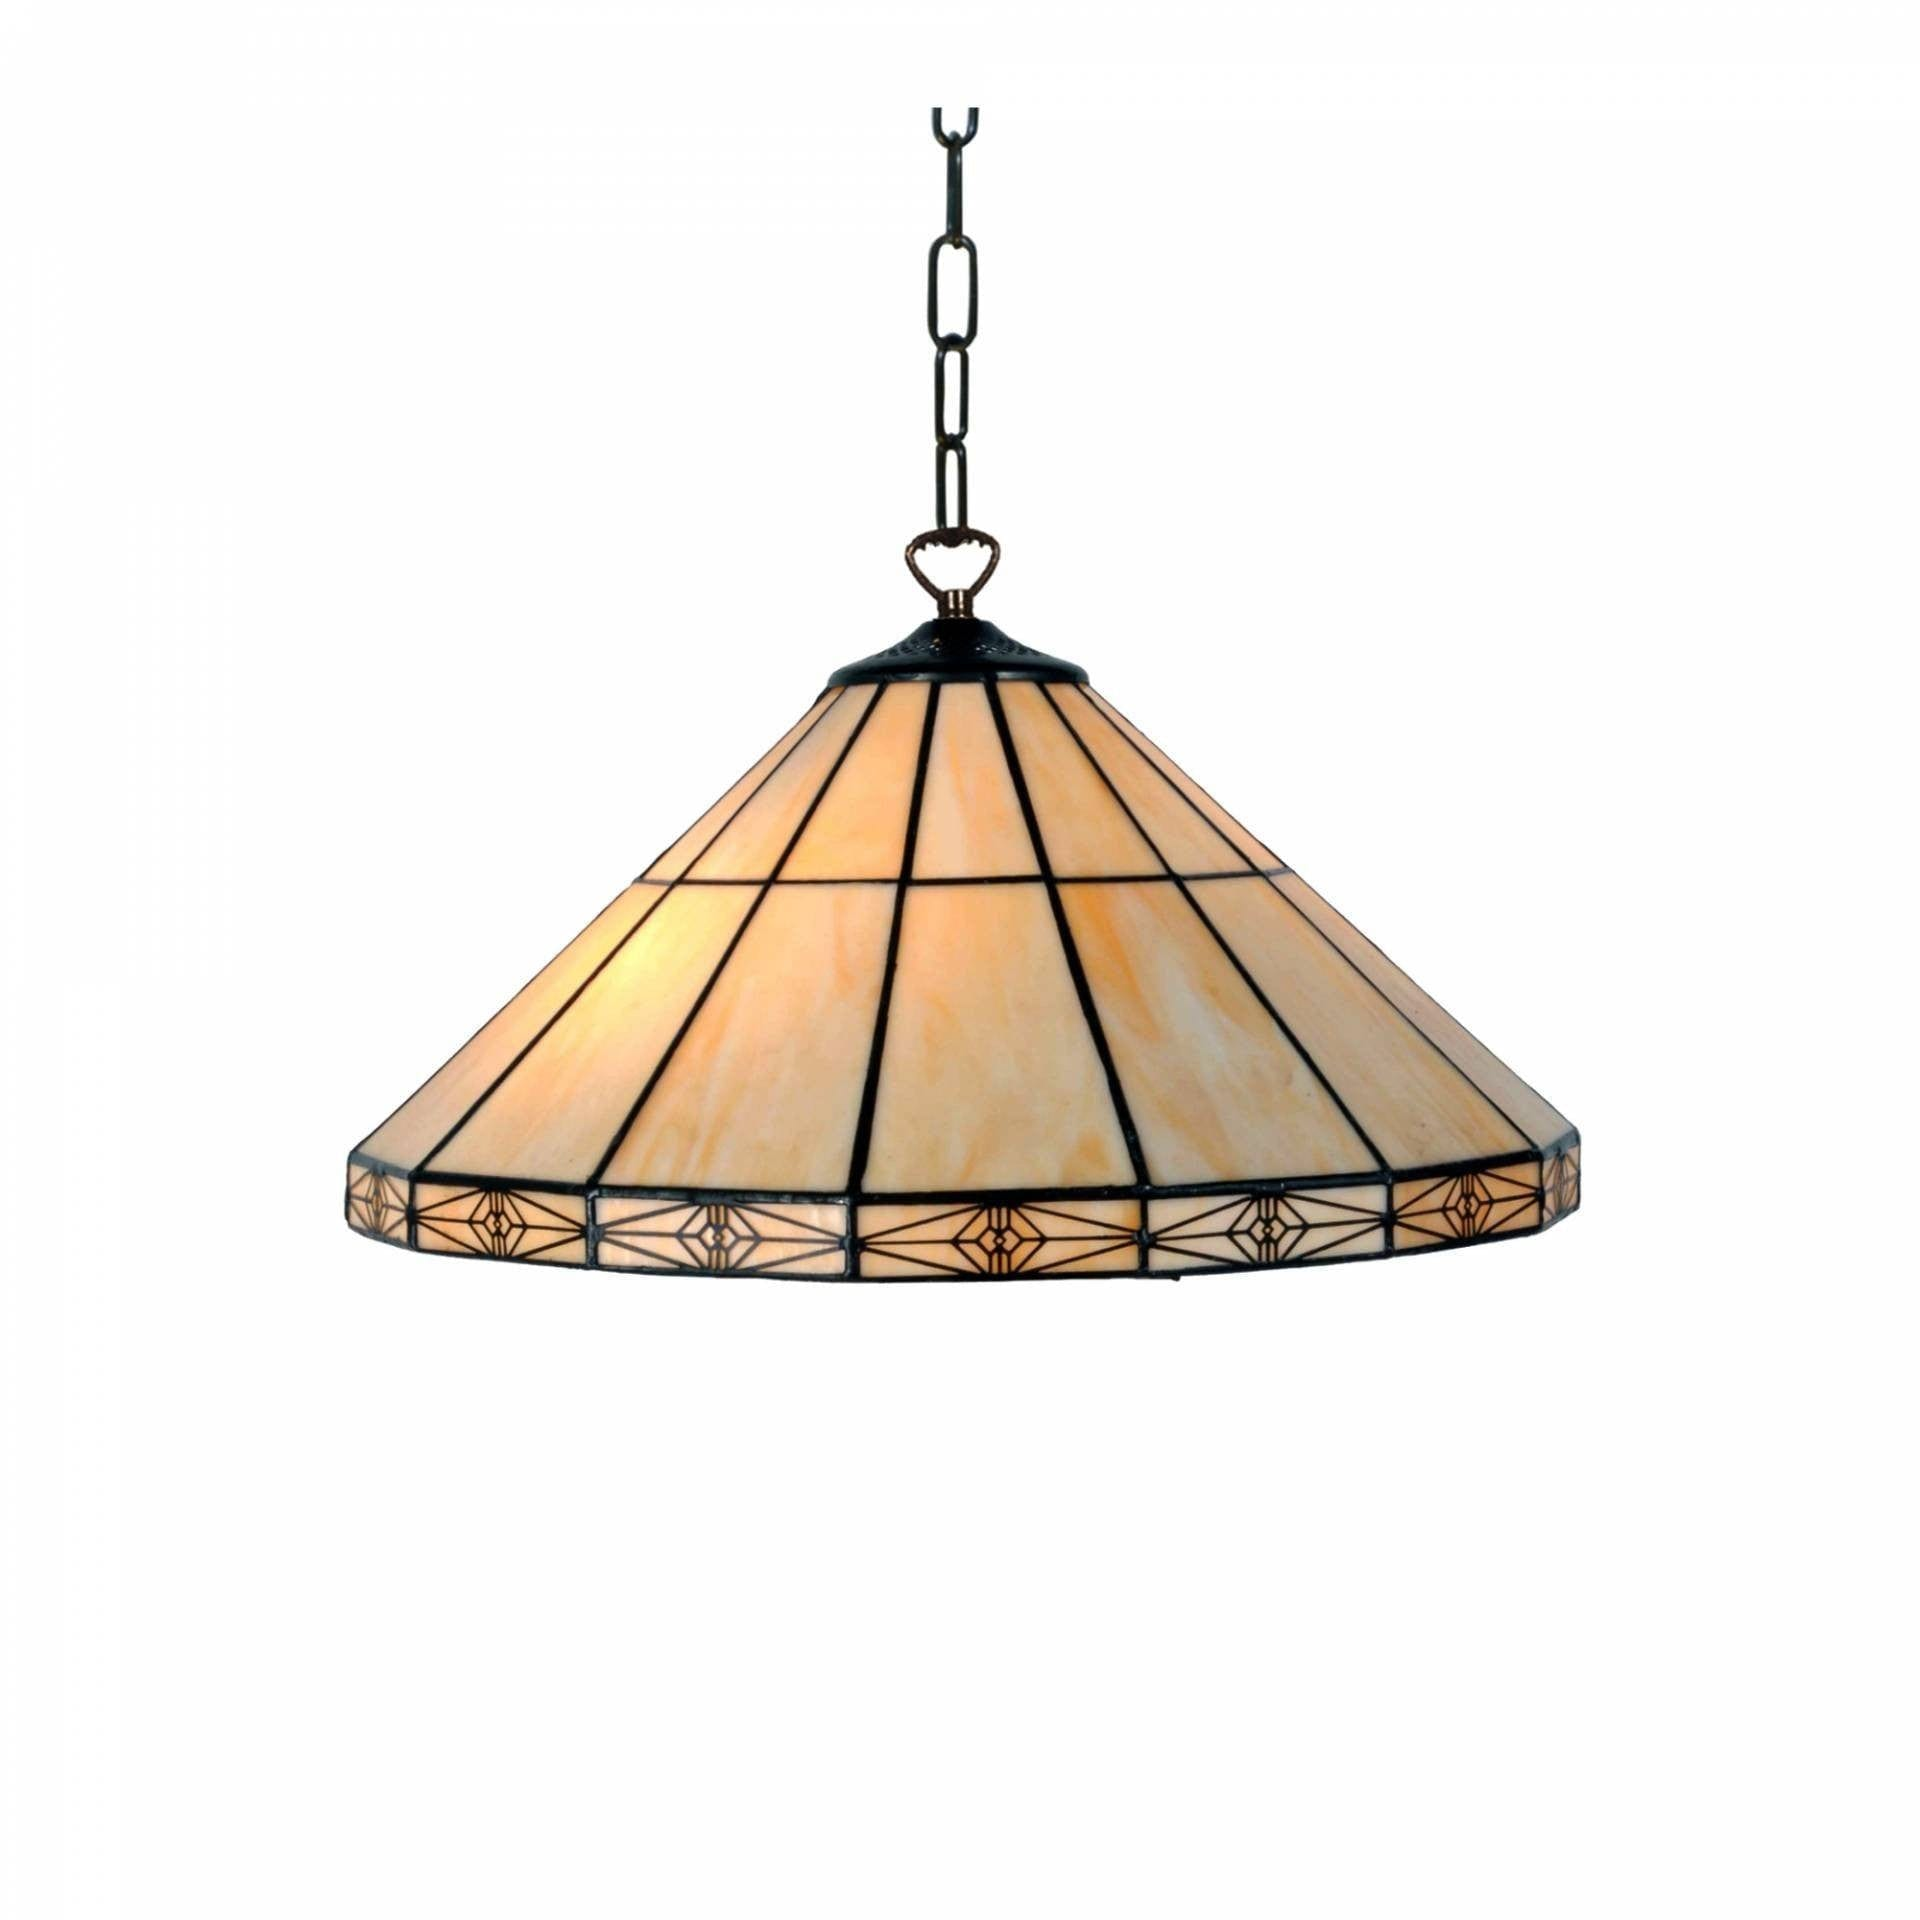 Tiffany Ceiling Pendant Lights - Dorchester Large Tiffany Ceiling Light,Single Bulb Fitting